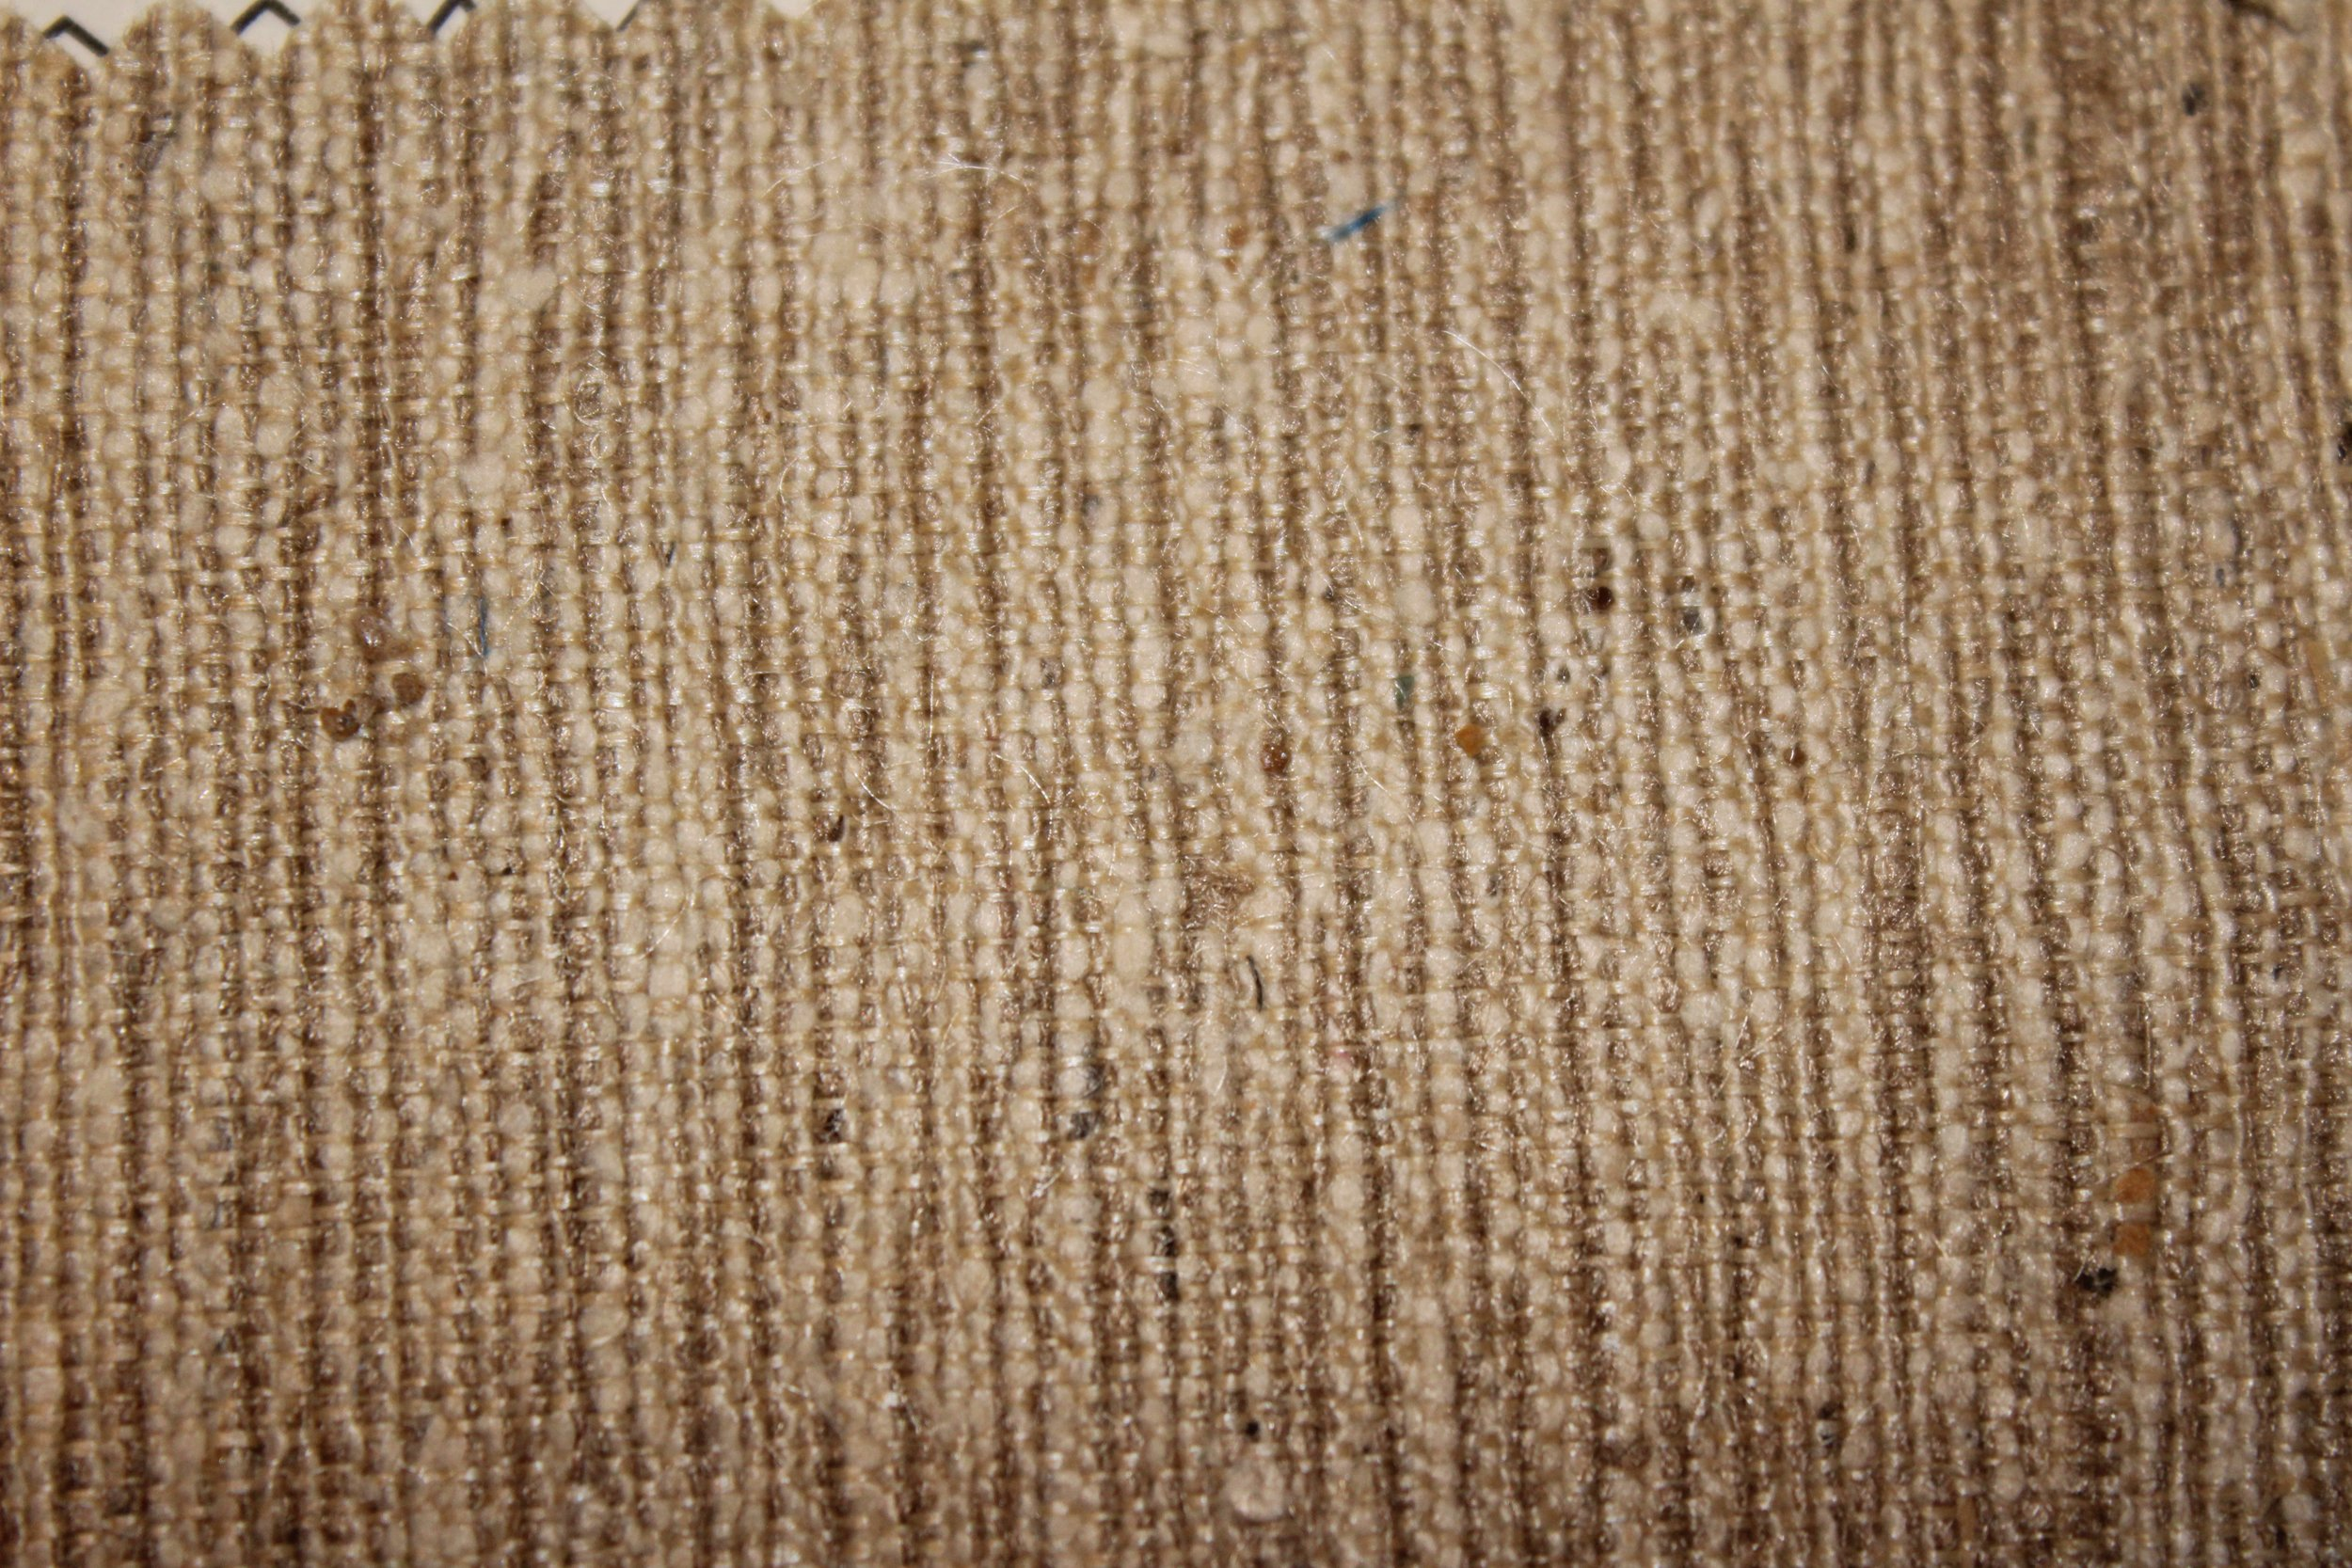 Tussah silk typically has a rougher texture, although not always this rough. The brownish to cream color is also typical of Tussah silk.